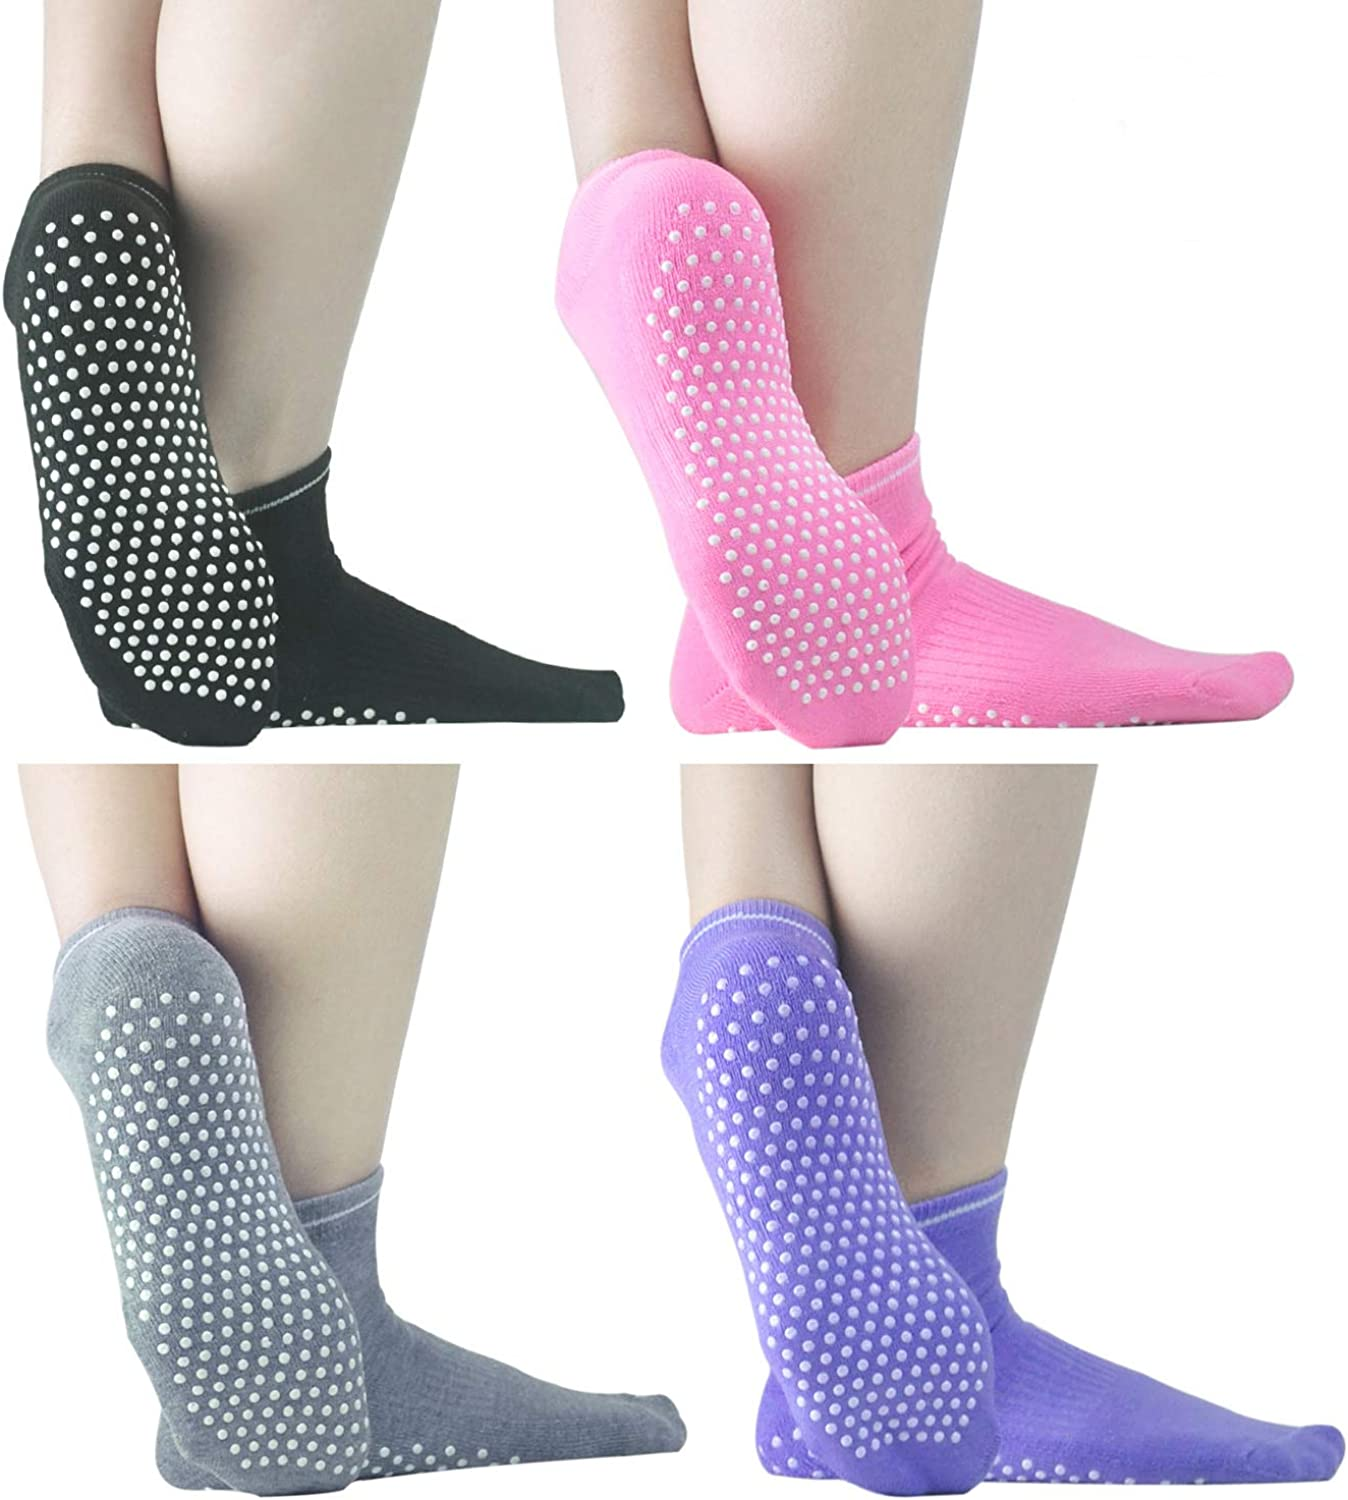 Sticky Grippers Non Skid Socks ELUTONG 2/4 Pack Floors Slip Socks For/Men/Women